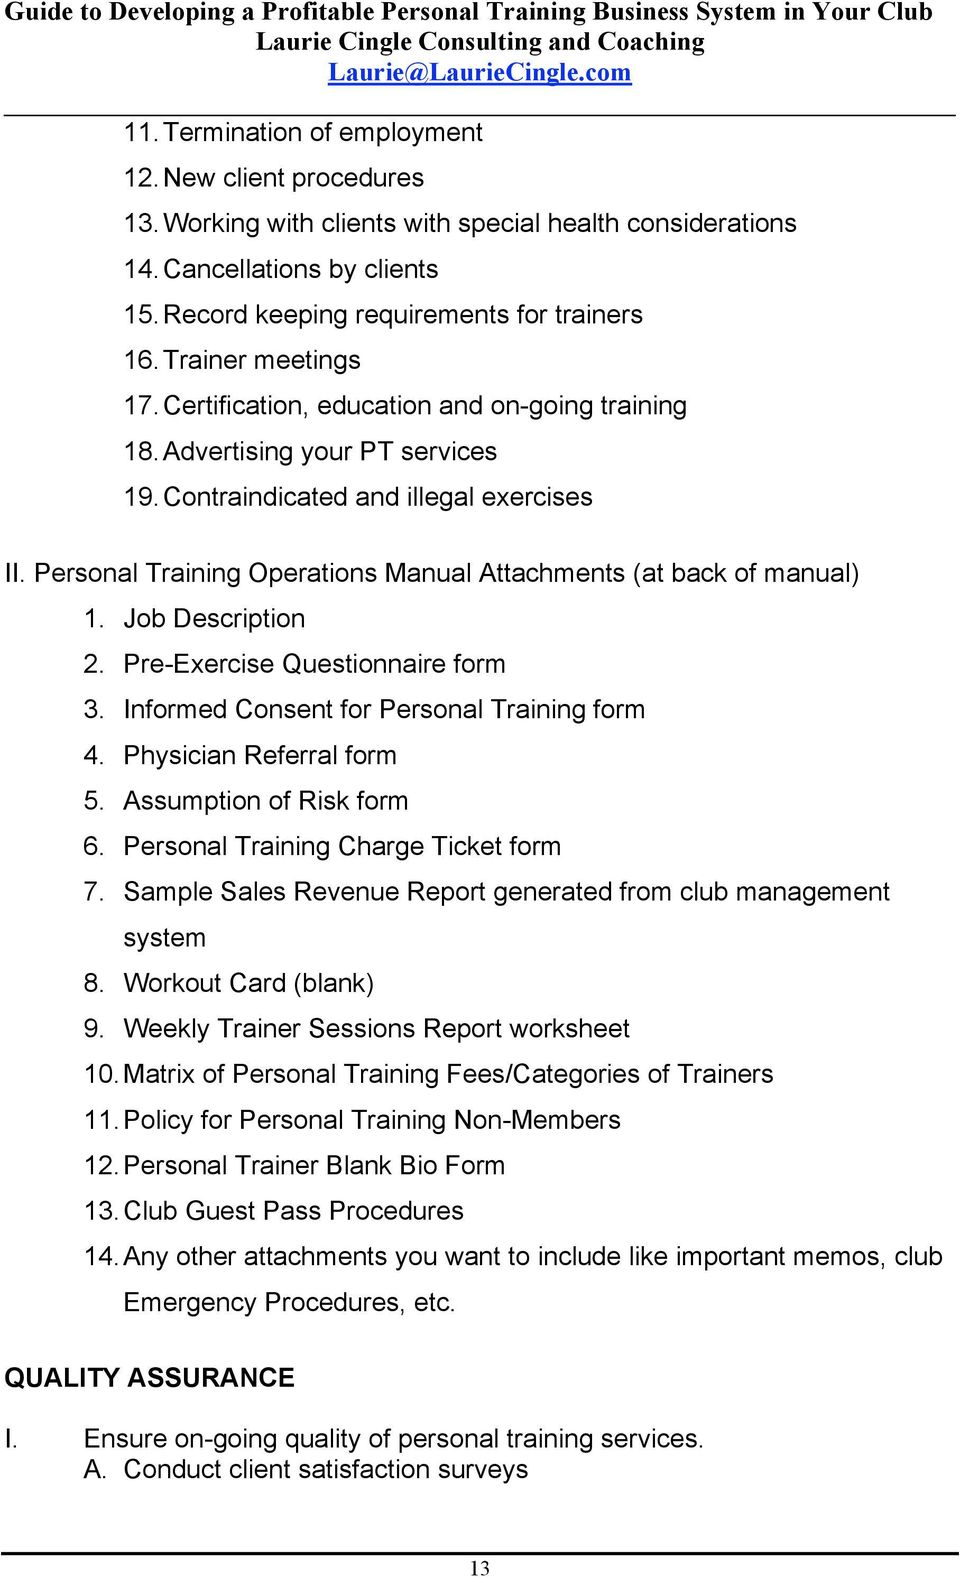 Personal Training Operations Manual Attachments (at back of manual) 1. Job Description 2. Pre-Exercise Questionnaire form 3. Informed Consent for Personal Training form 4. Physician Referral form 5.